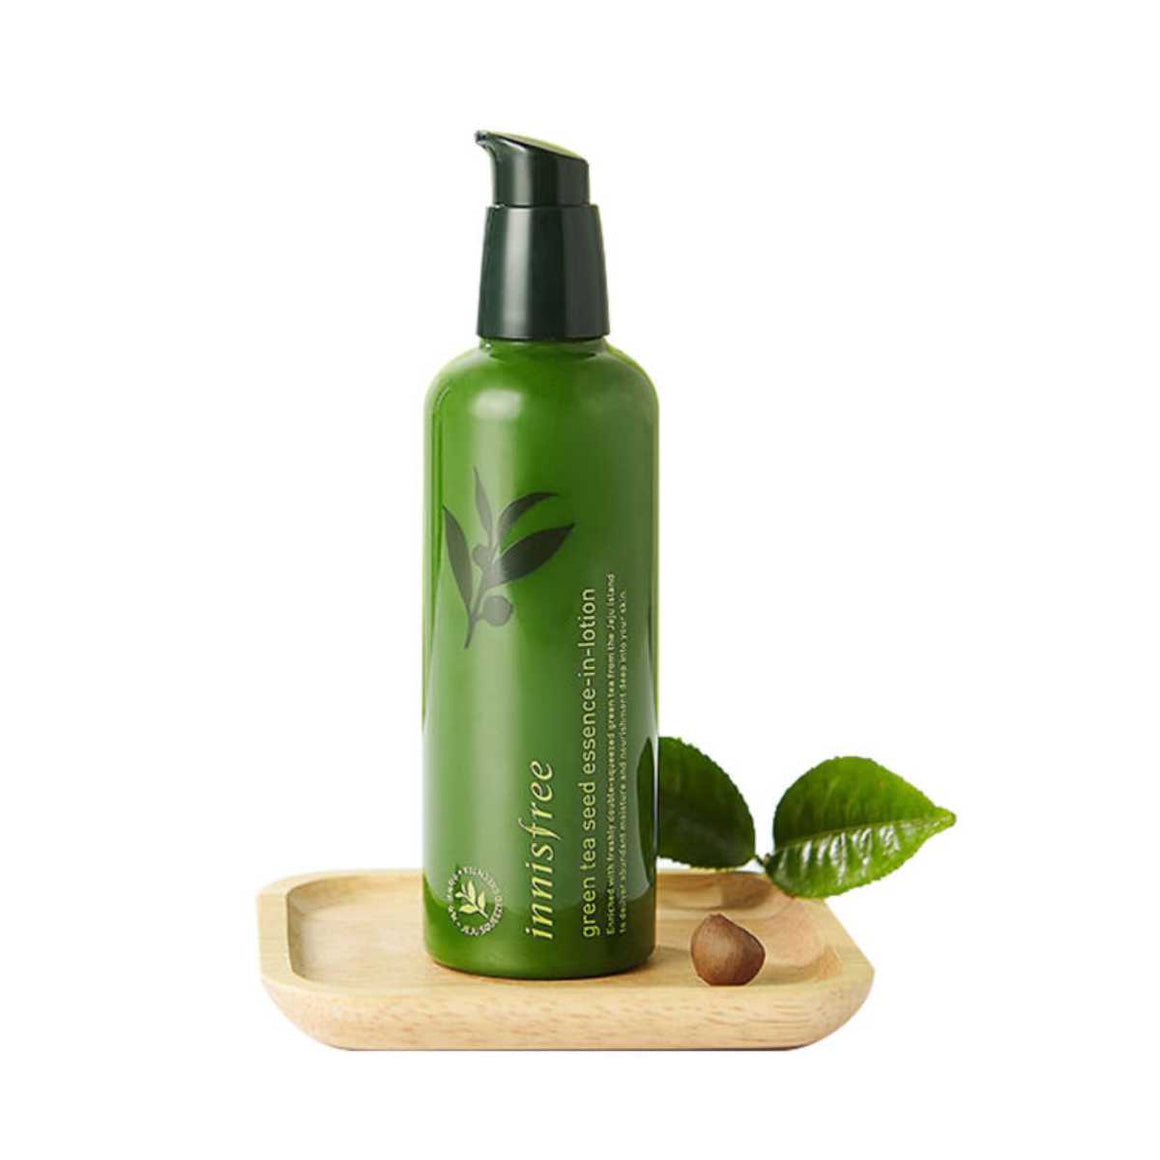 Innisfree green Tea Seed Essence-In-Lotion